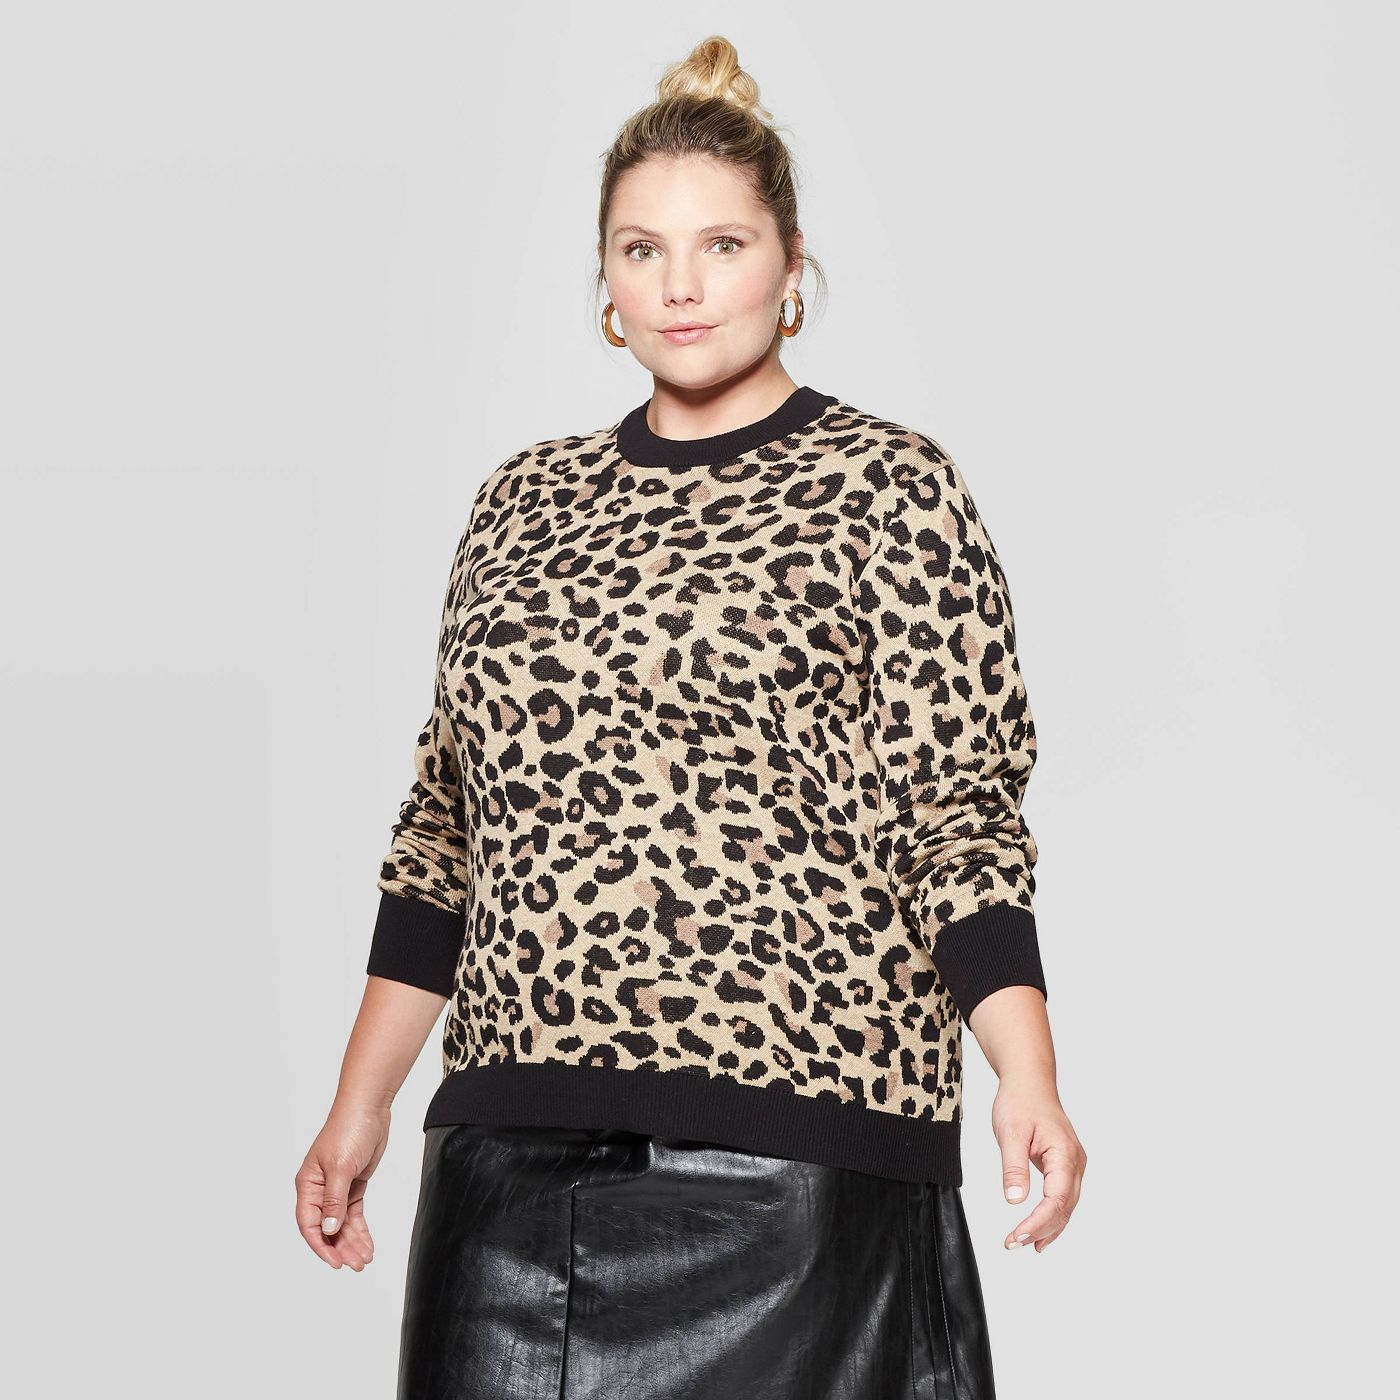 Women's Plus Size Animal Print Long Sleeve Crewneck Pullover Sweater - Ava & Viv™ - image 1 of 2